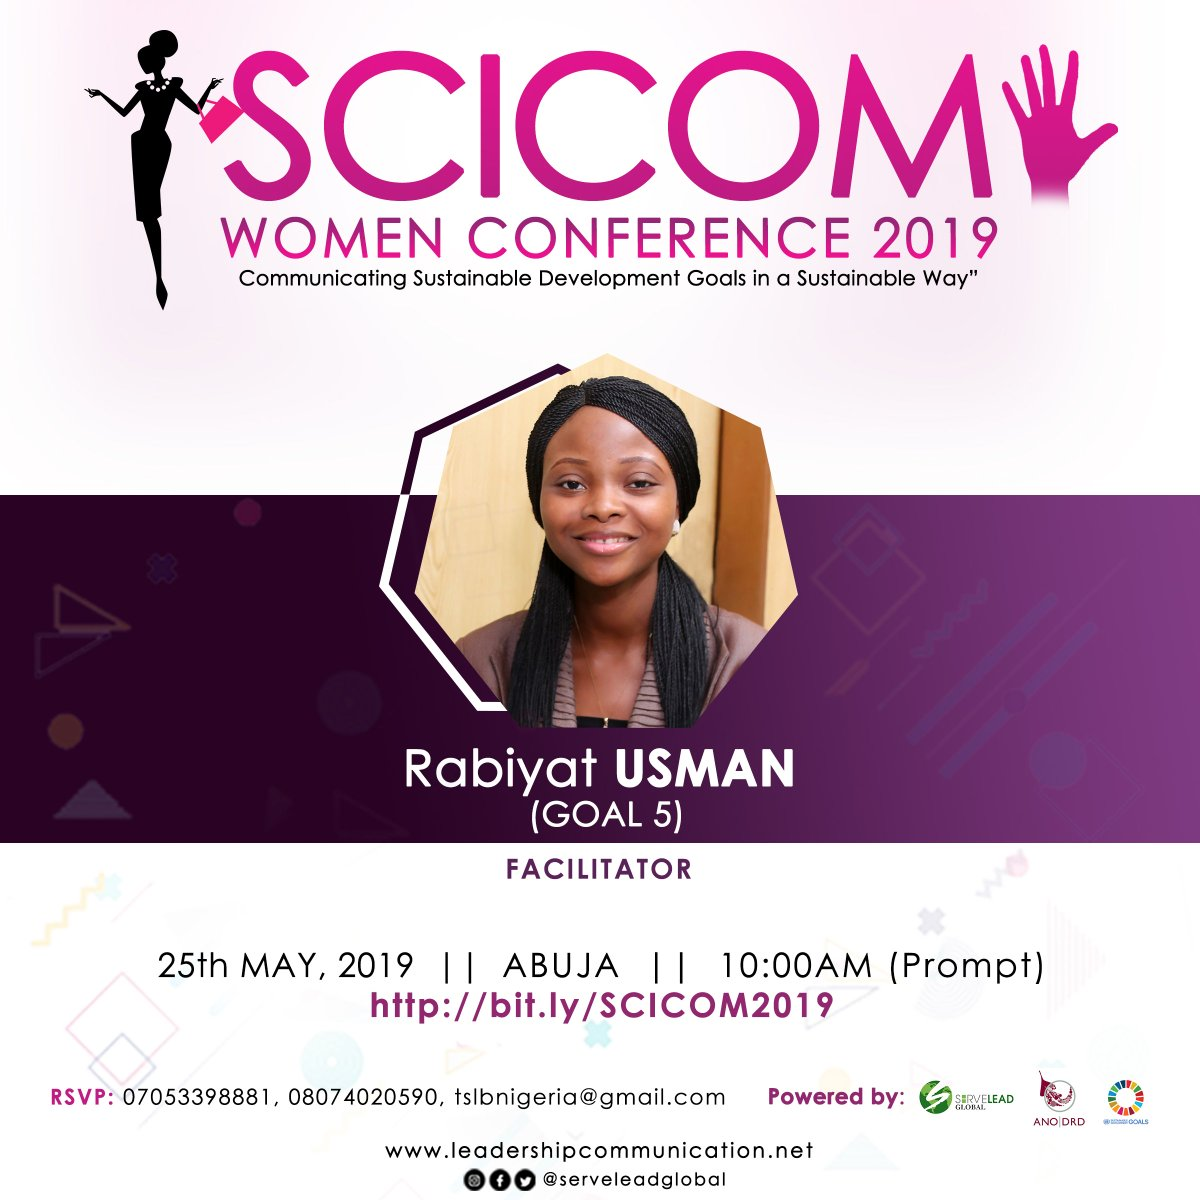 It's a great pleasure to invite distinguished and aspiring ladies/gentlemen to grace a phenomenal event scheduled for 25th May, 2019 tomorrow, Saturday at 10:00am. #Thread  #FridayThoughts  #FridayFeeling  #GratefulHeart  #EqualityAdvocate pic.twitter.com/H0F9Sd86dZ